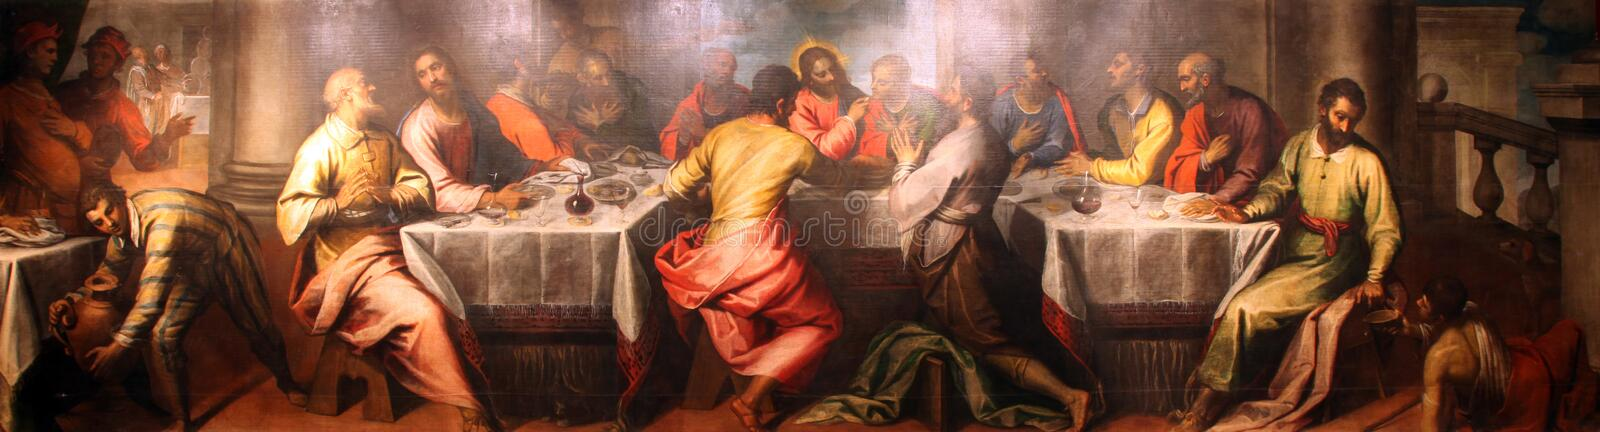 Last Supper. The Last Supper painting at the church altar stock photos